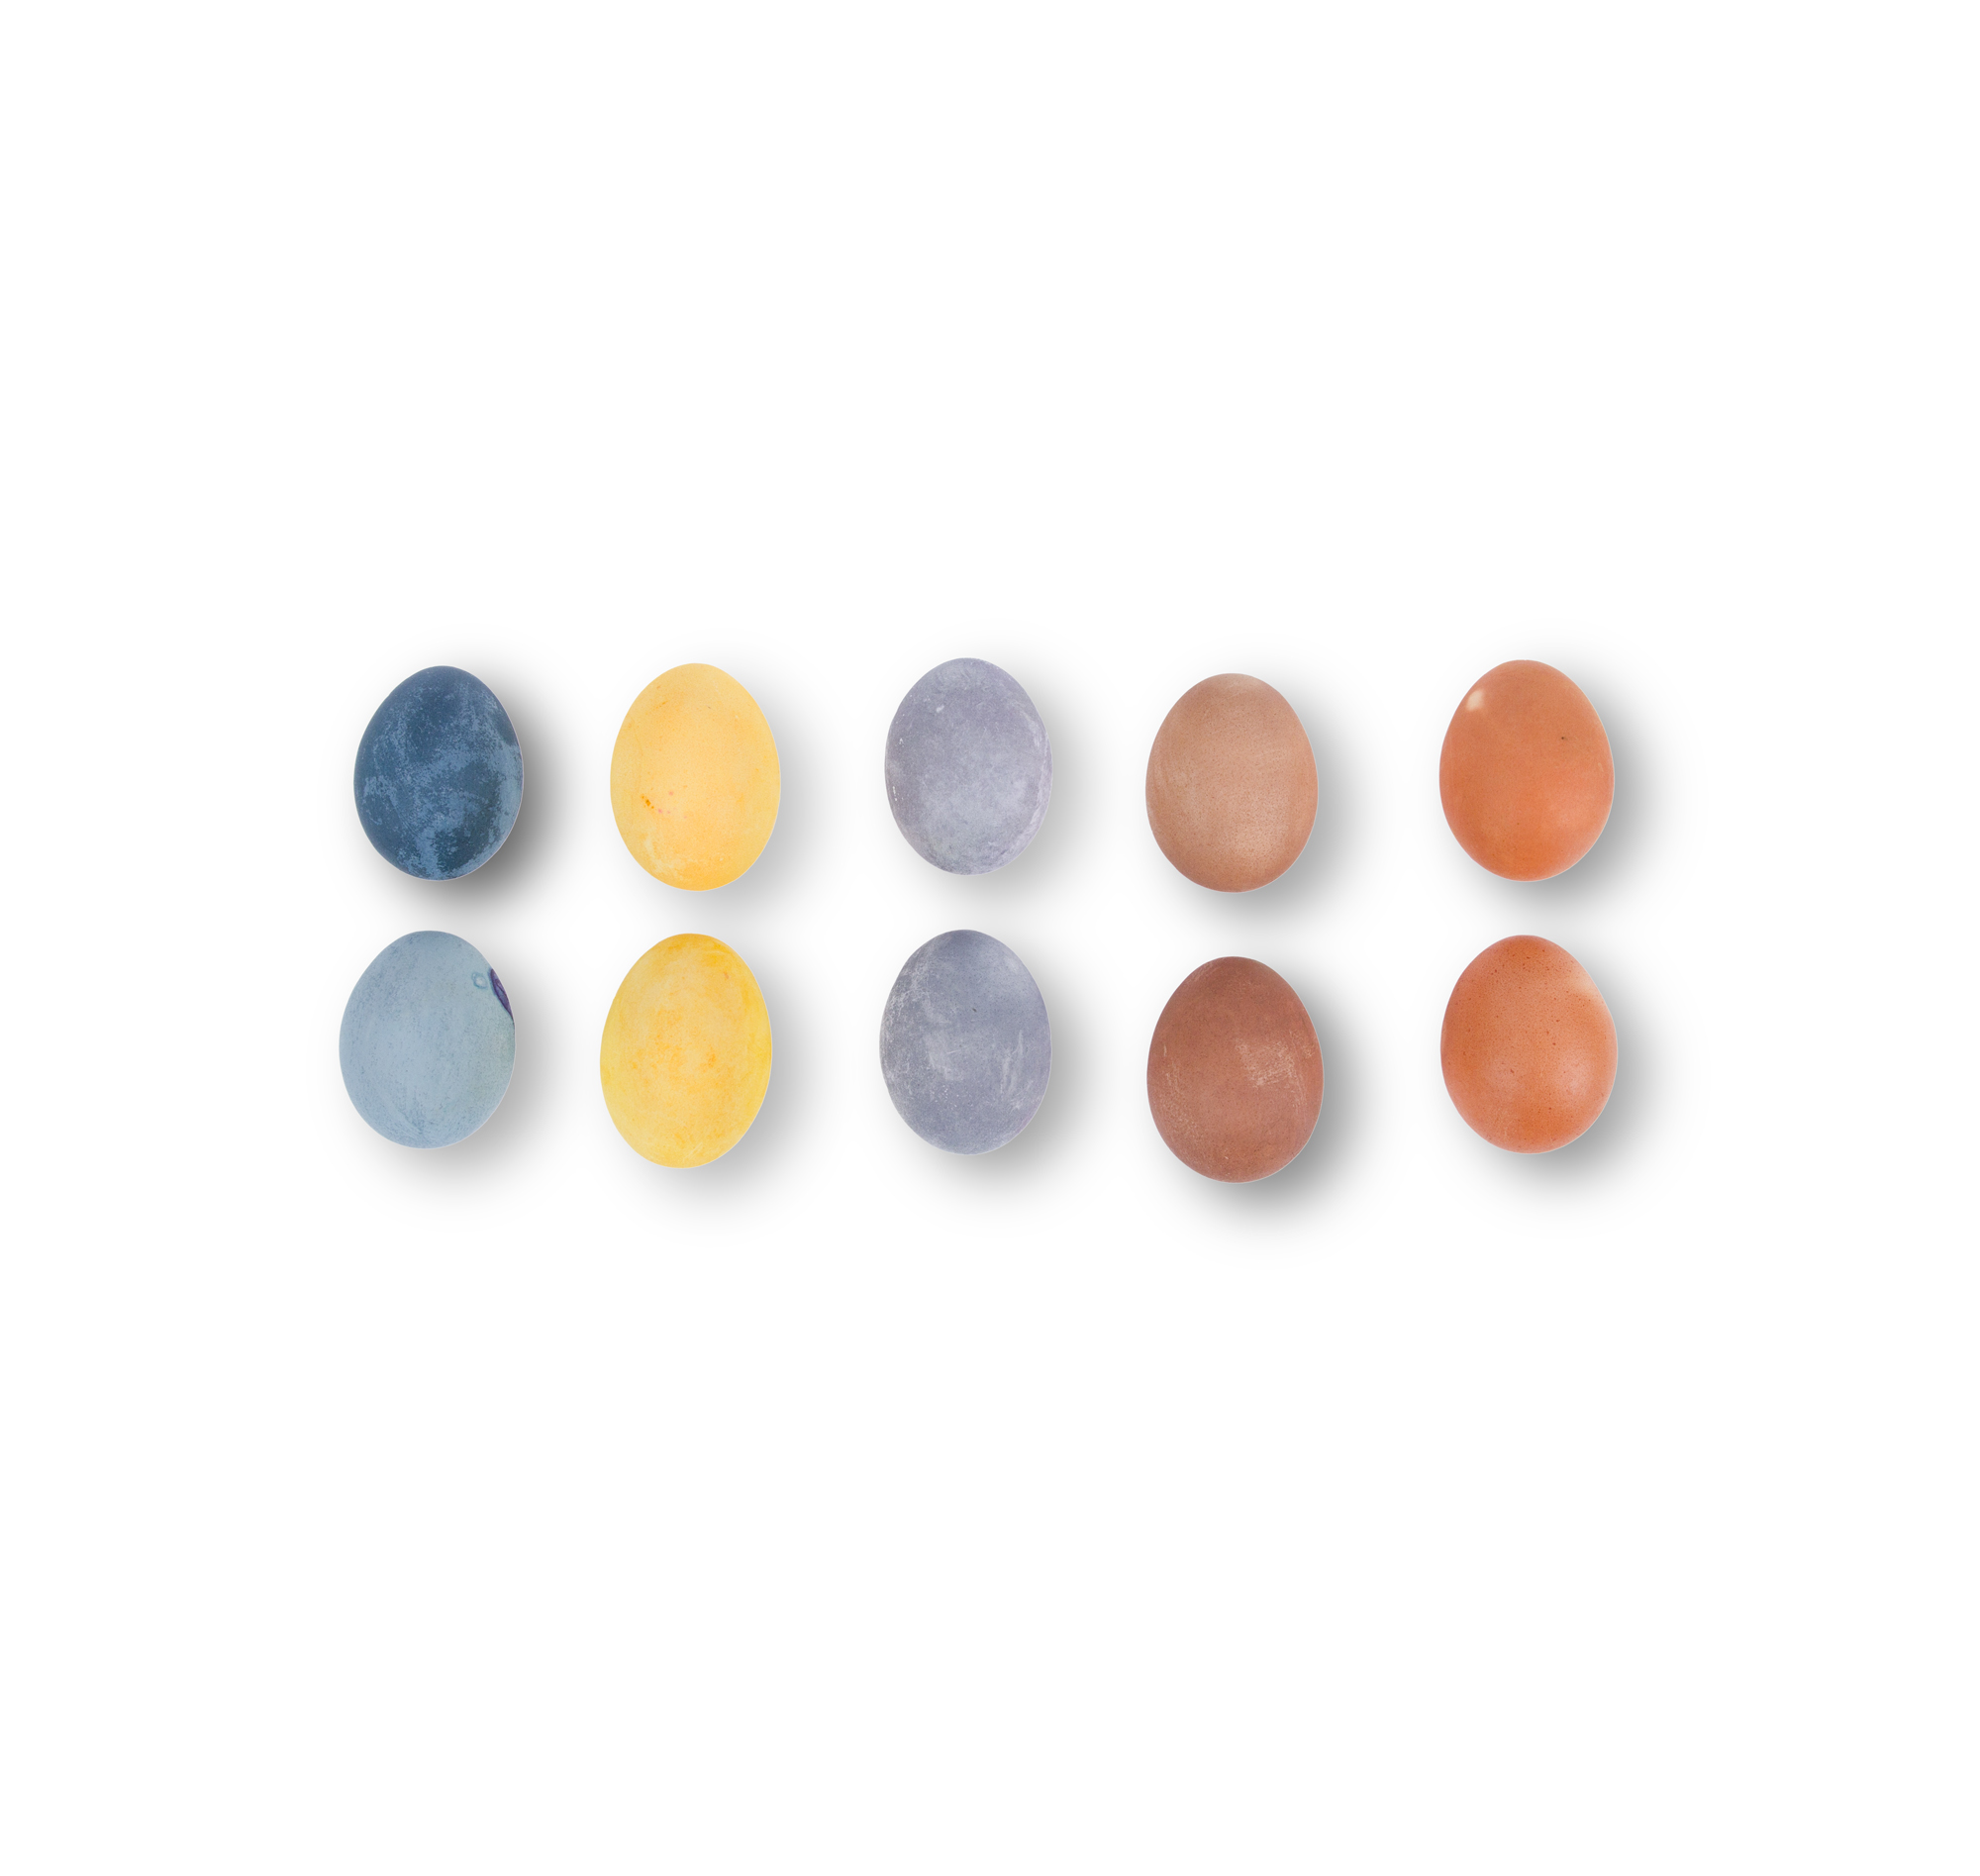 Easter egg ideas - Natural Dyed Easter Eggs